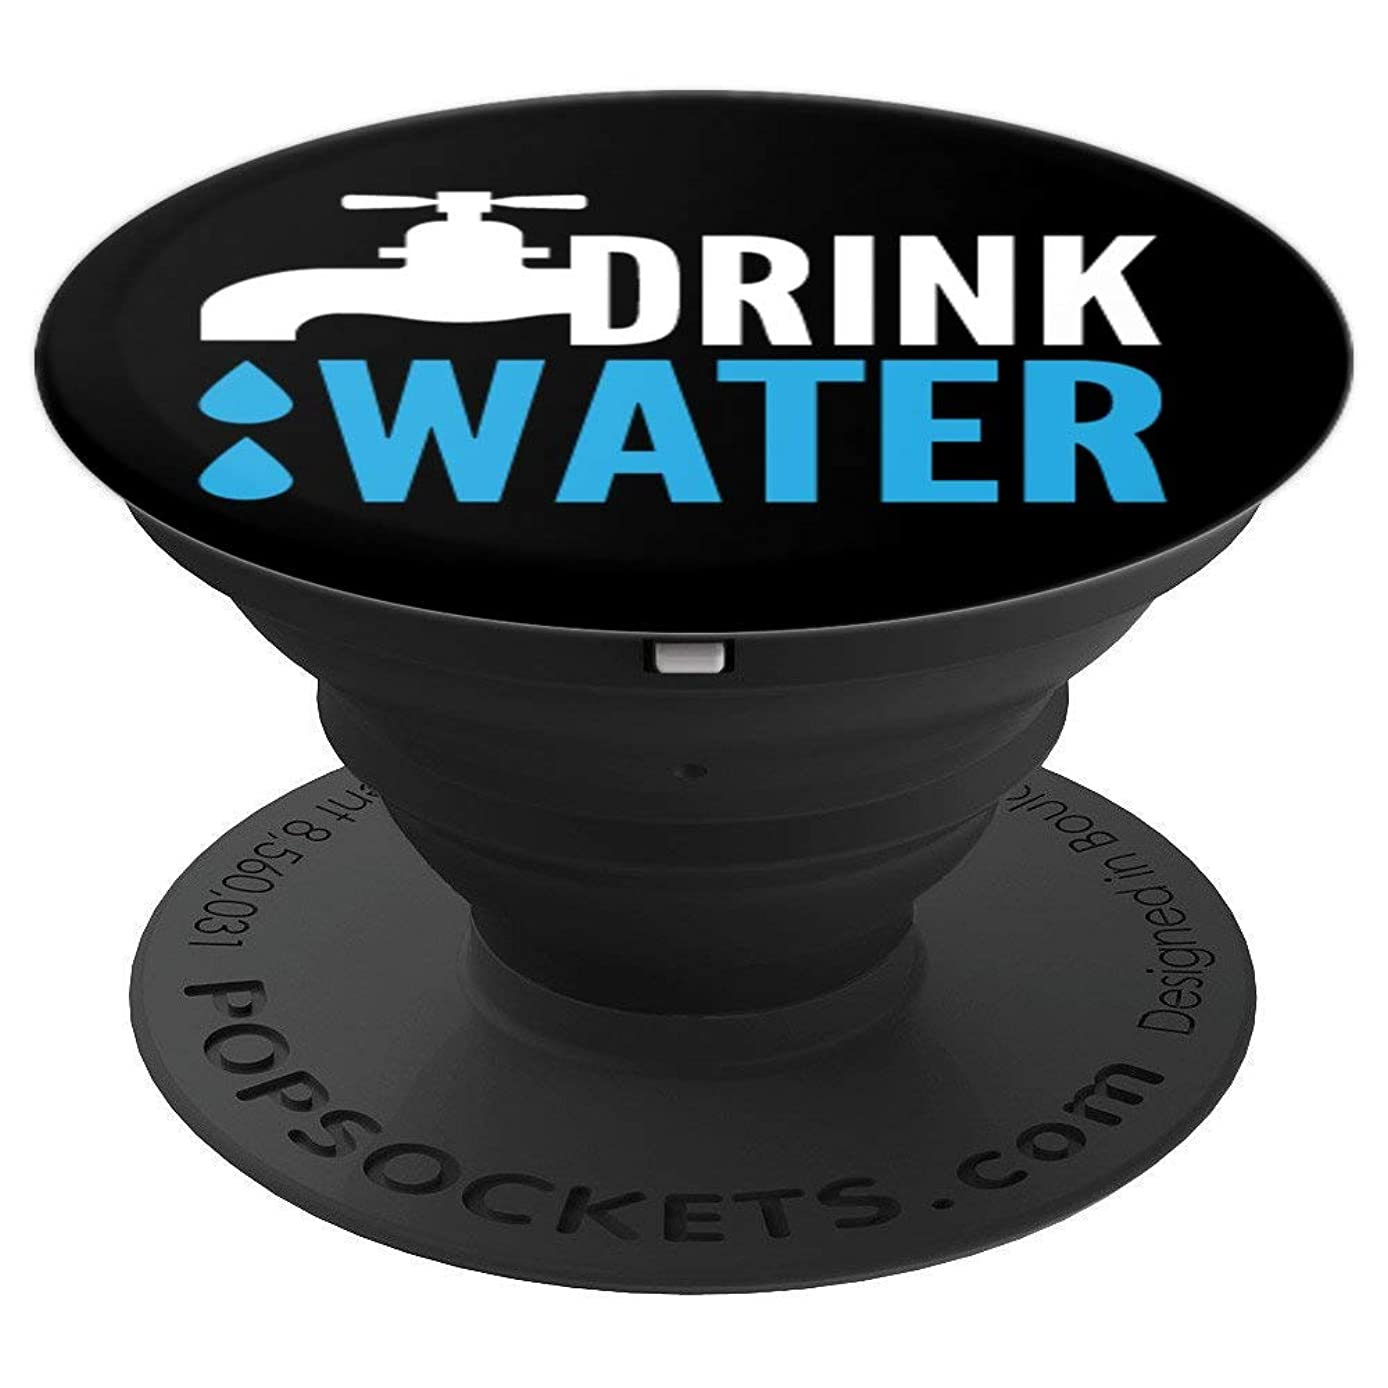 Drink Water Stay Hydrated Workout Fitness - PopSockets Grip and Stand for Phones and Tablets